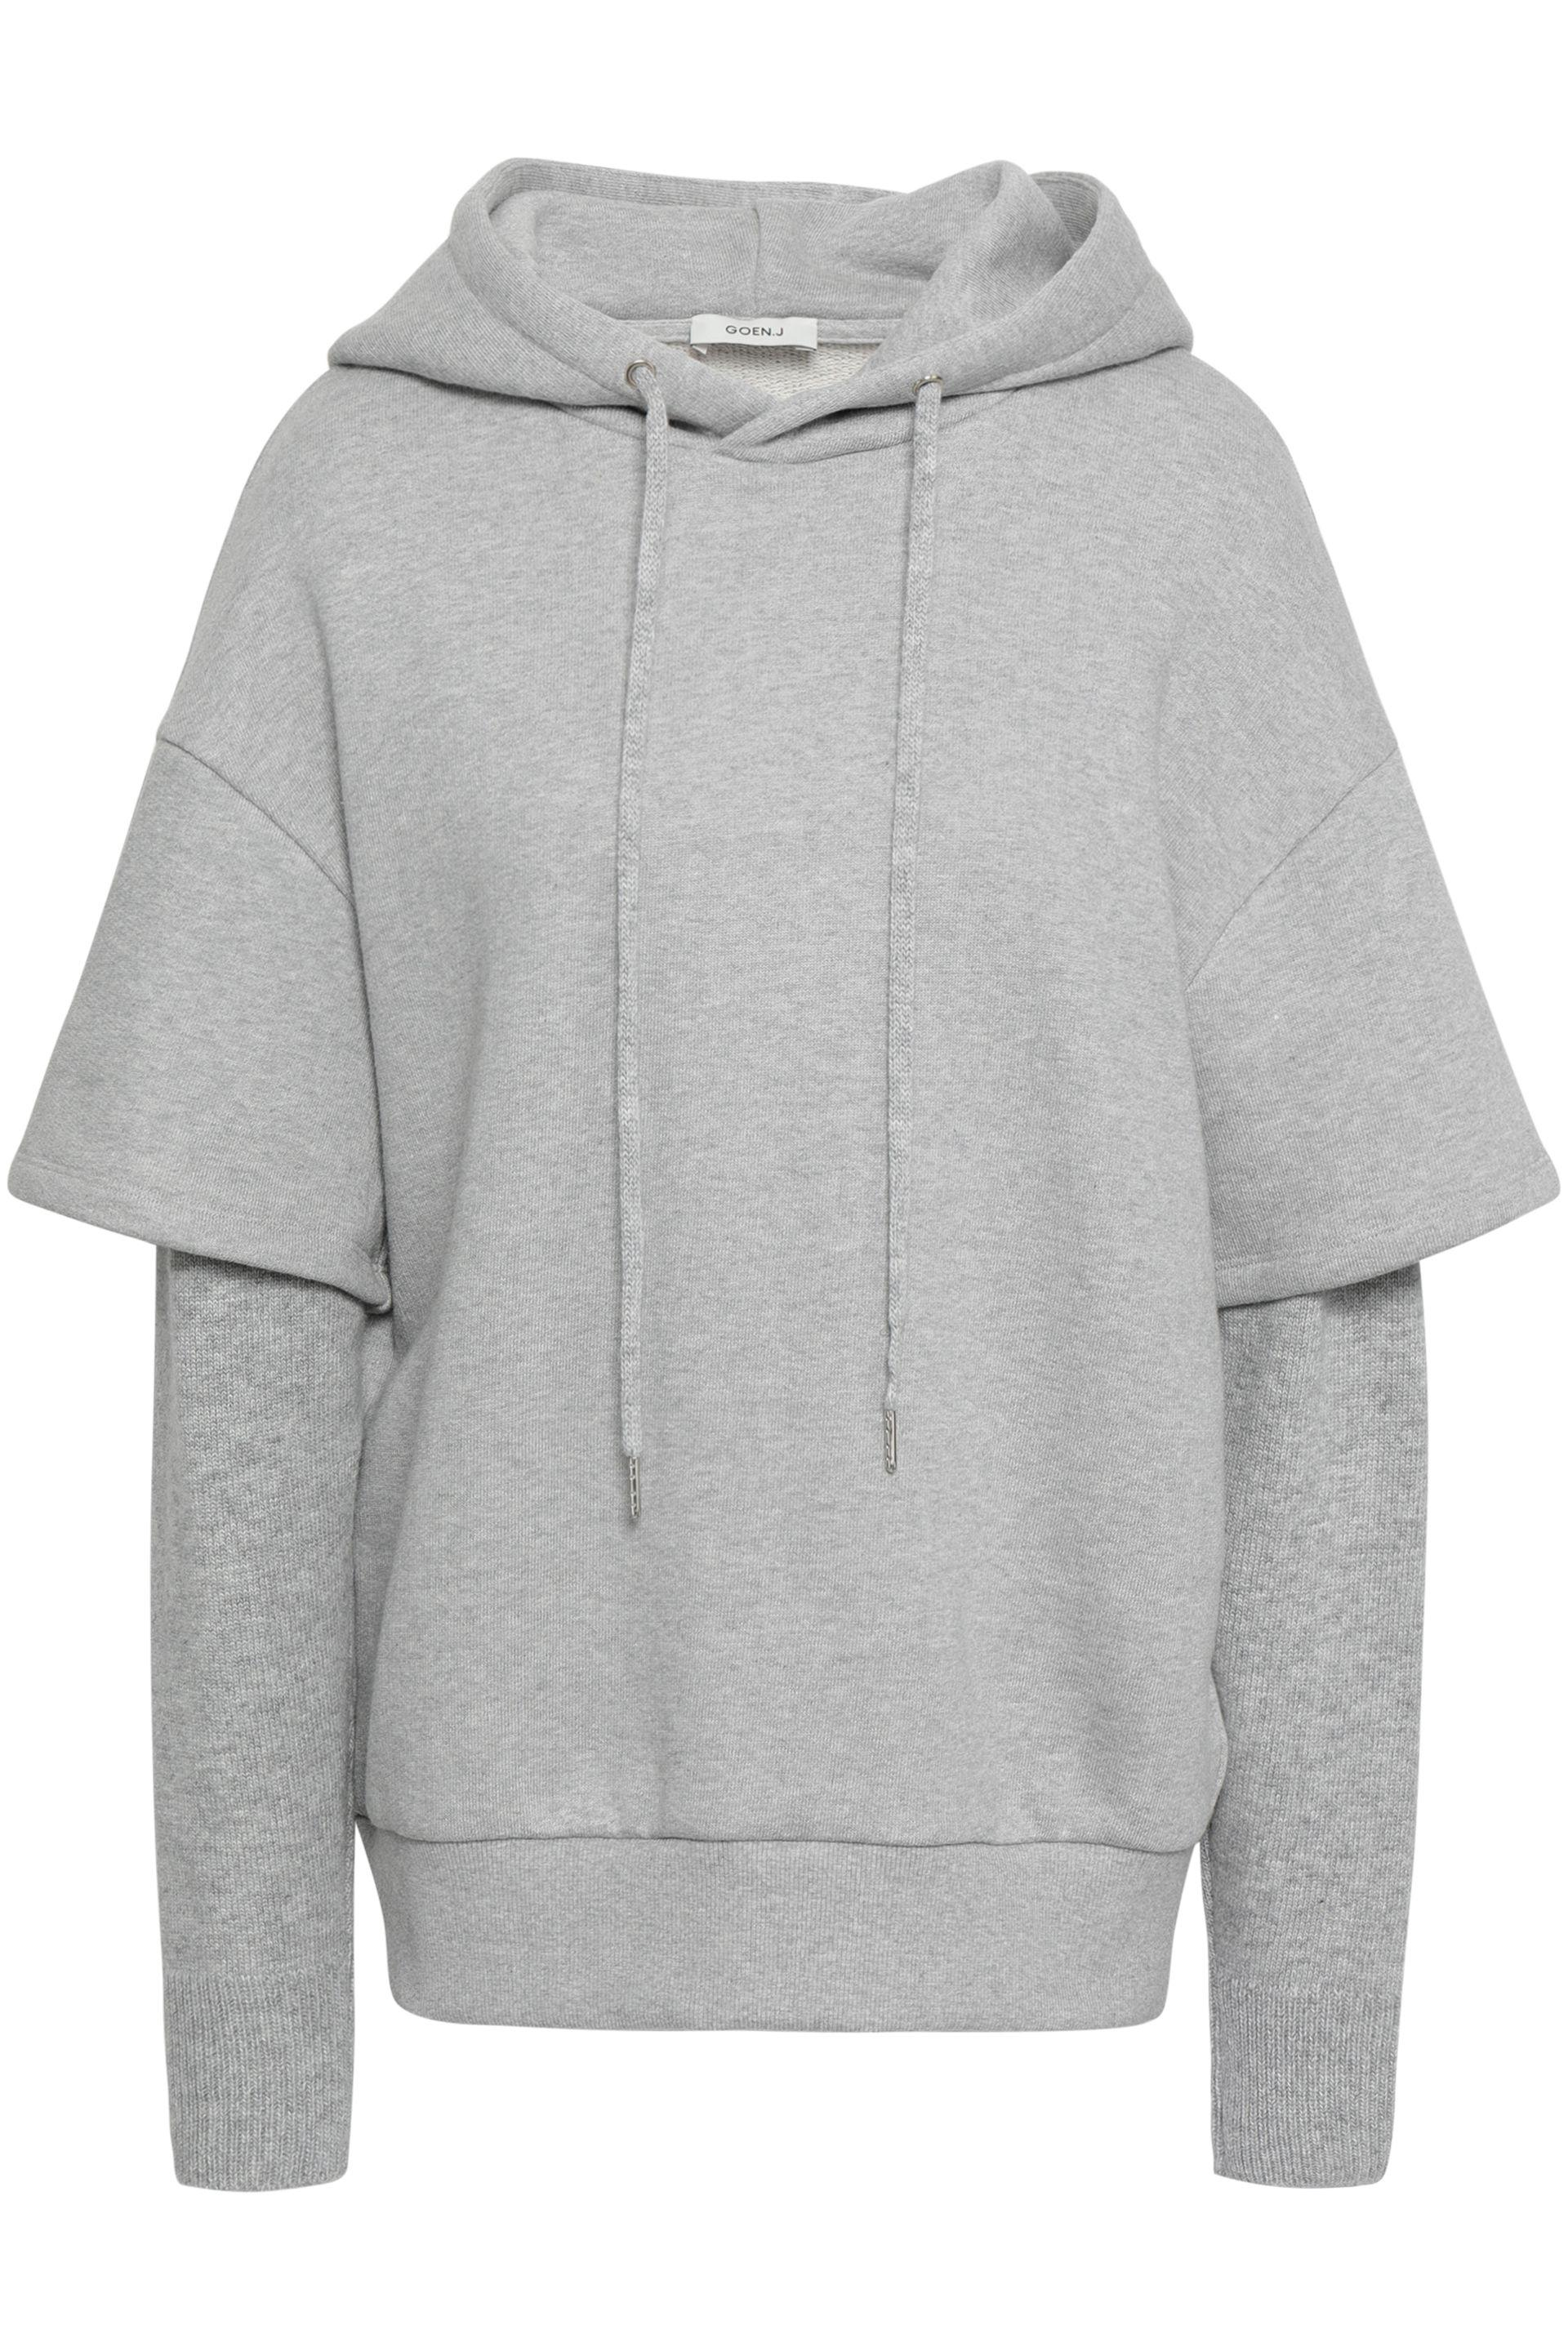 2a2db3f2a93 Goen.J. Women s Gray Woman Layered Knitted And French Cotton-terry Hooded  Sweatshirt Light Grey